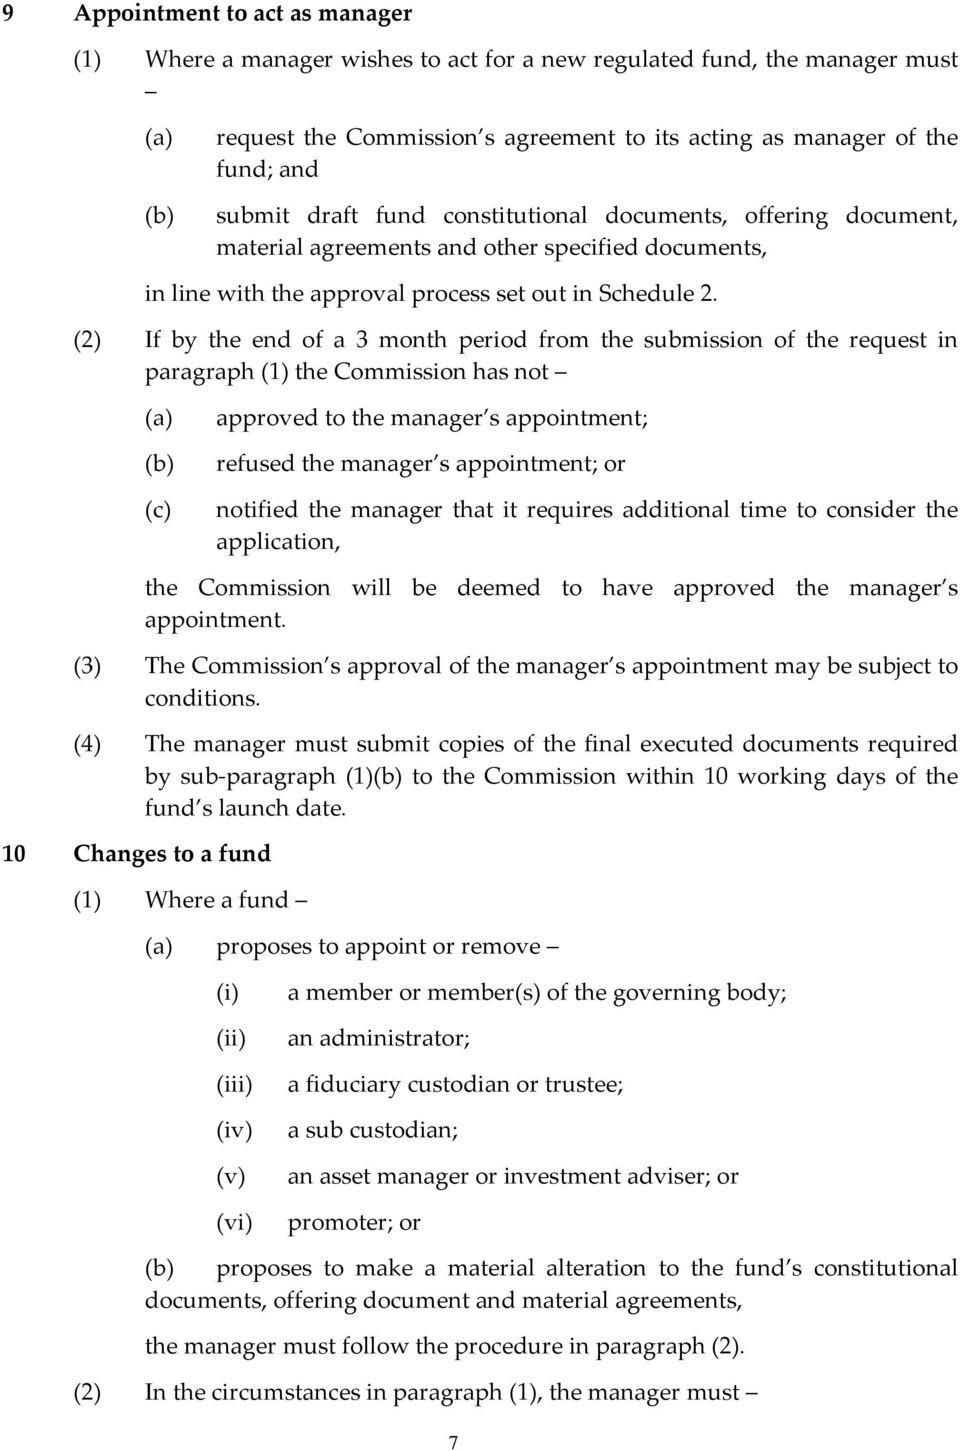 (2) If by the end of a 3 month period from the submission of the request in paragraph (1) the Commission has not approved to the manager s appointment; refused the manager s appointment; or notified